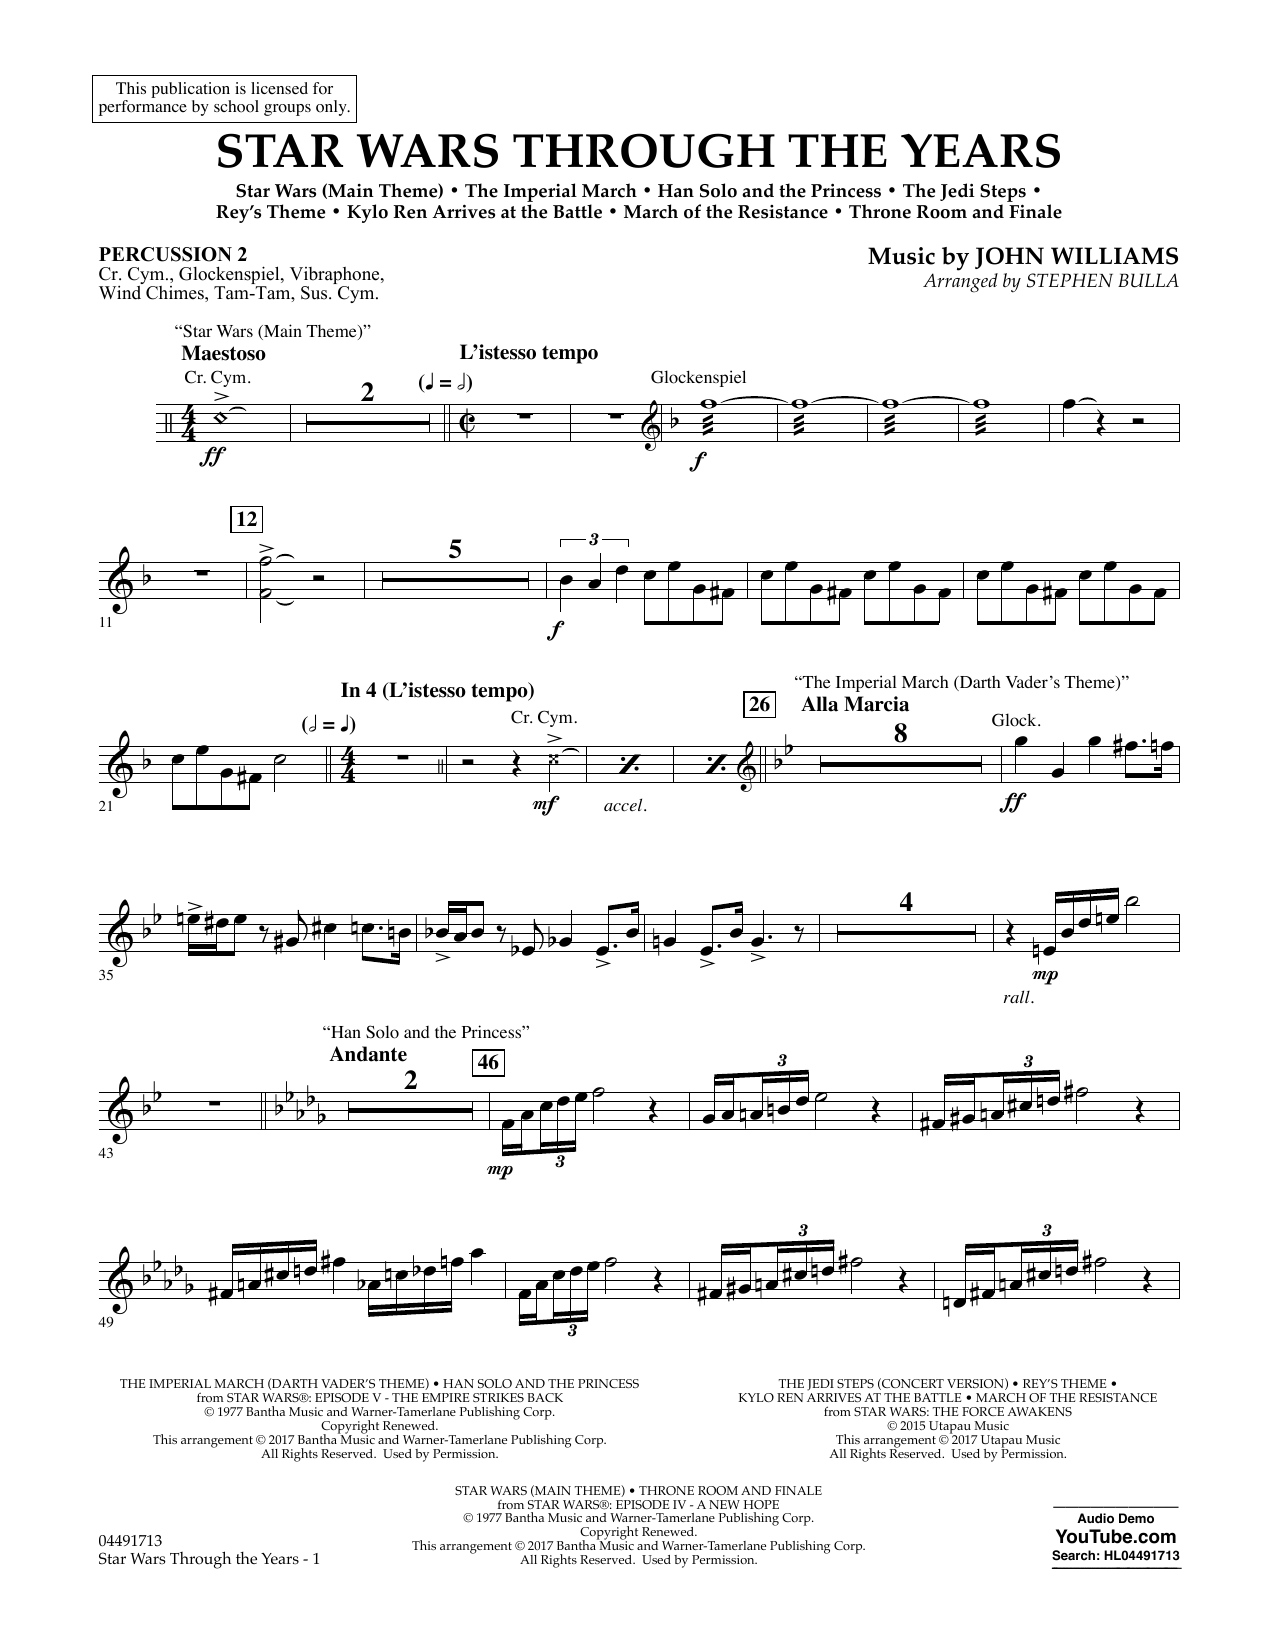 Star Wars Through the Years - Percussion 2 Sheet Music